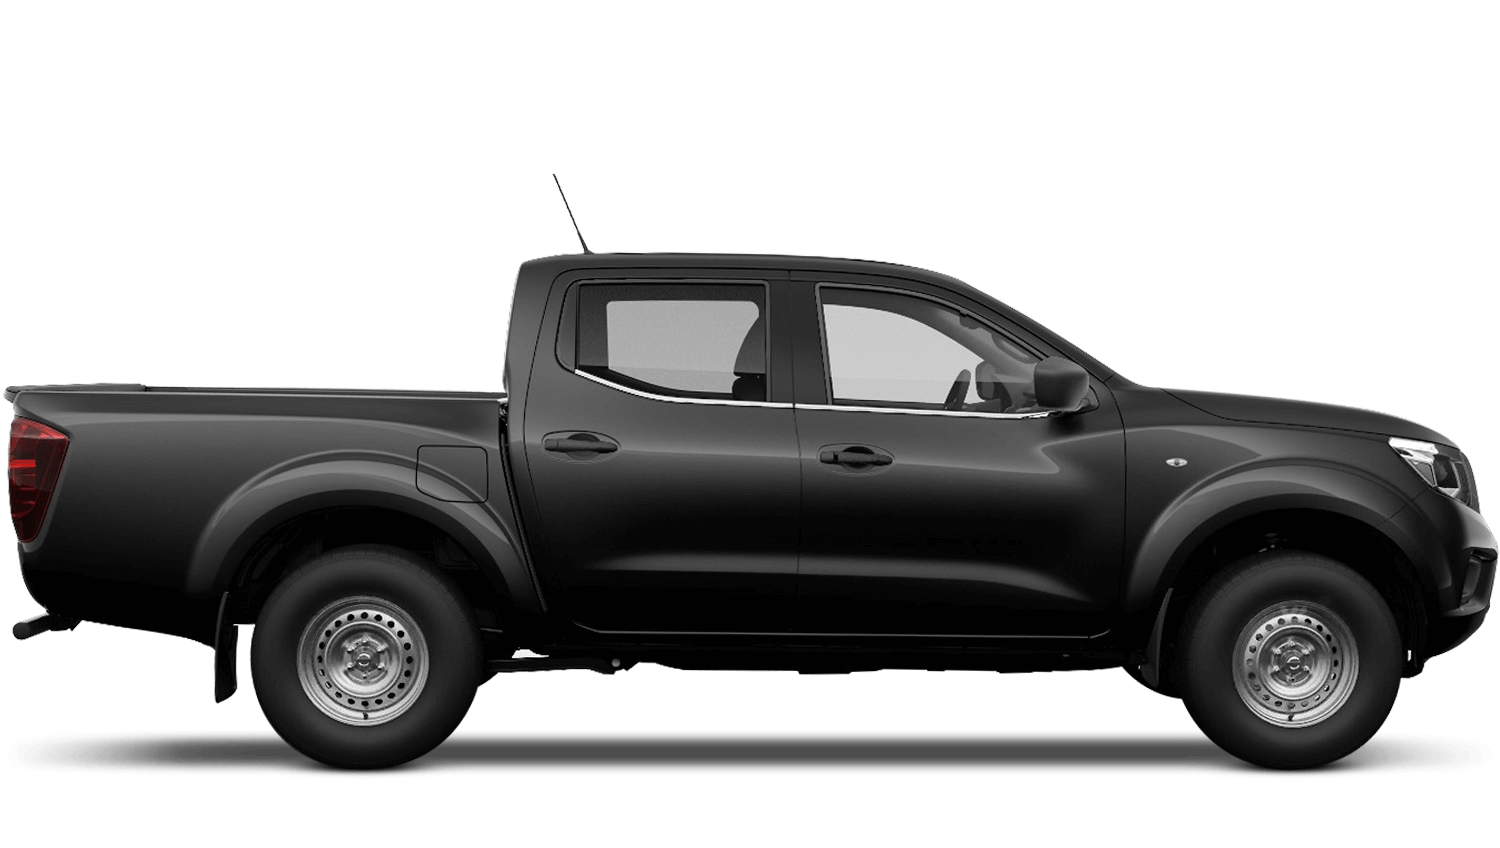 Metallic Black Nissan Navara